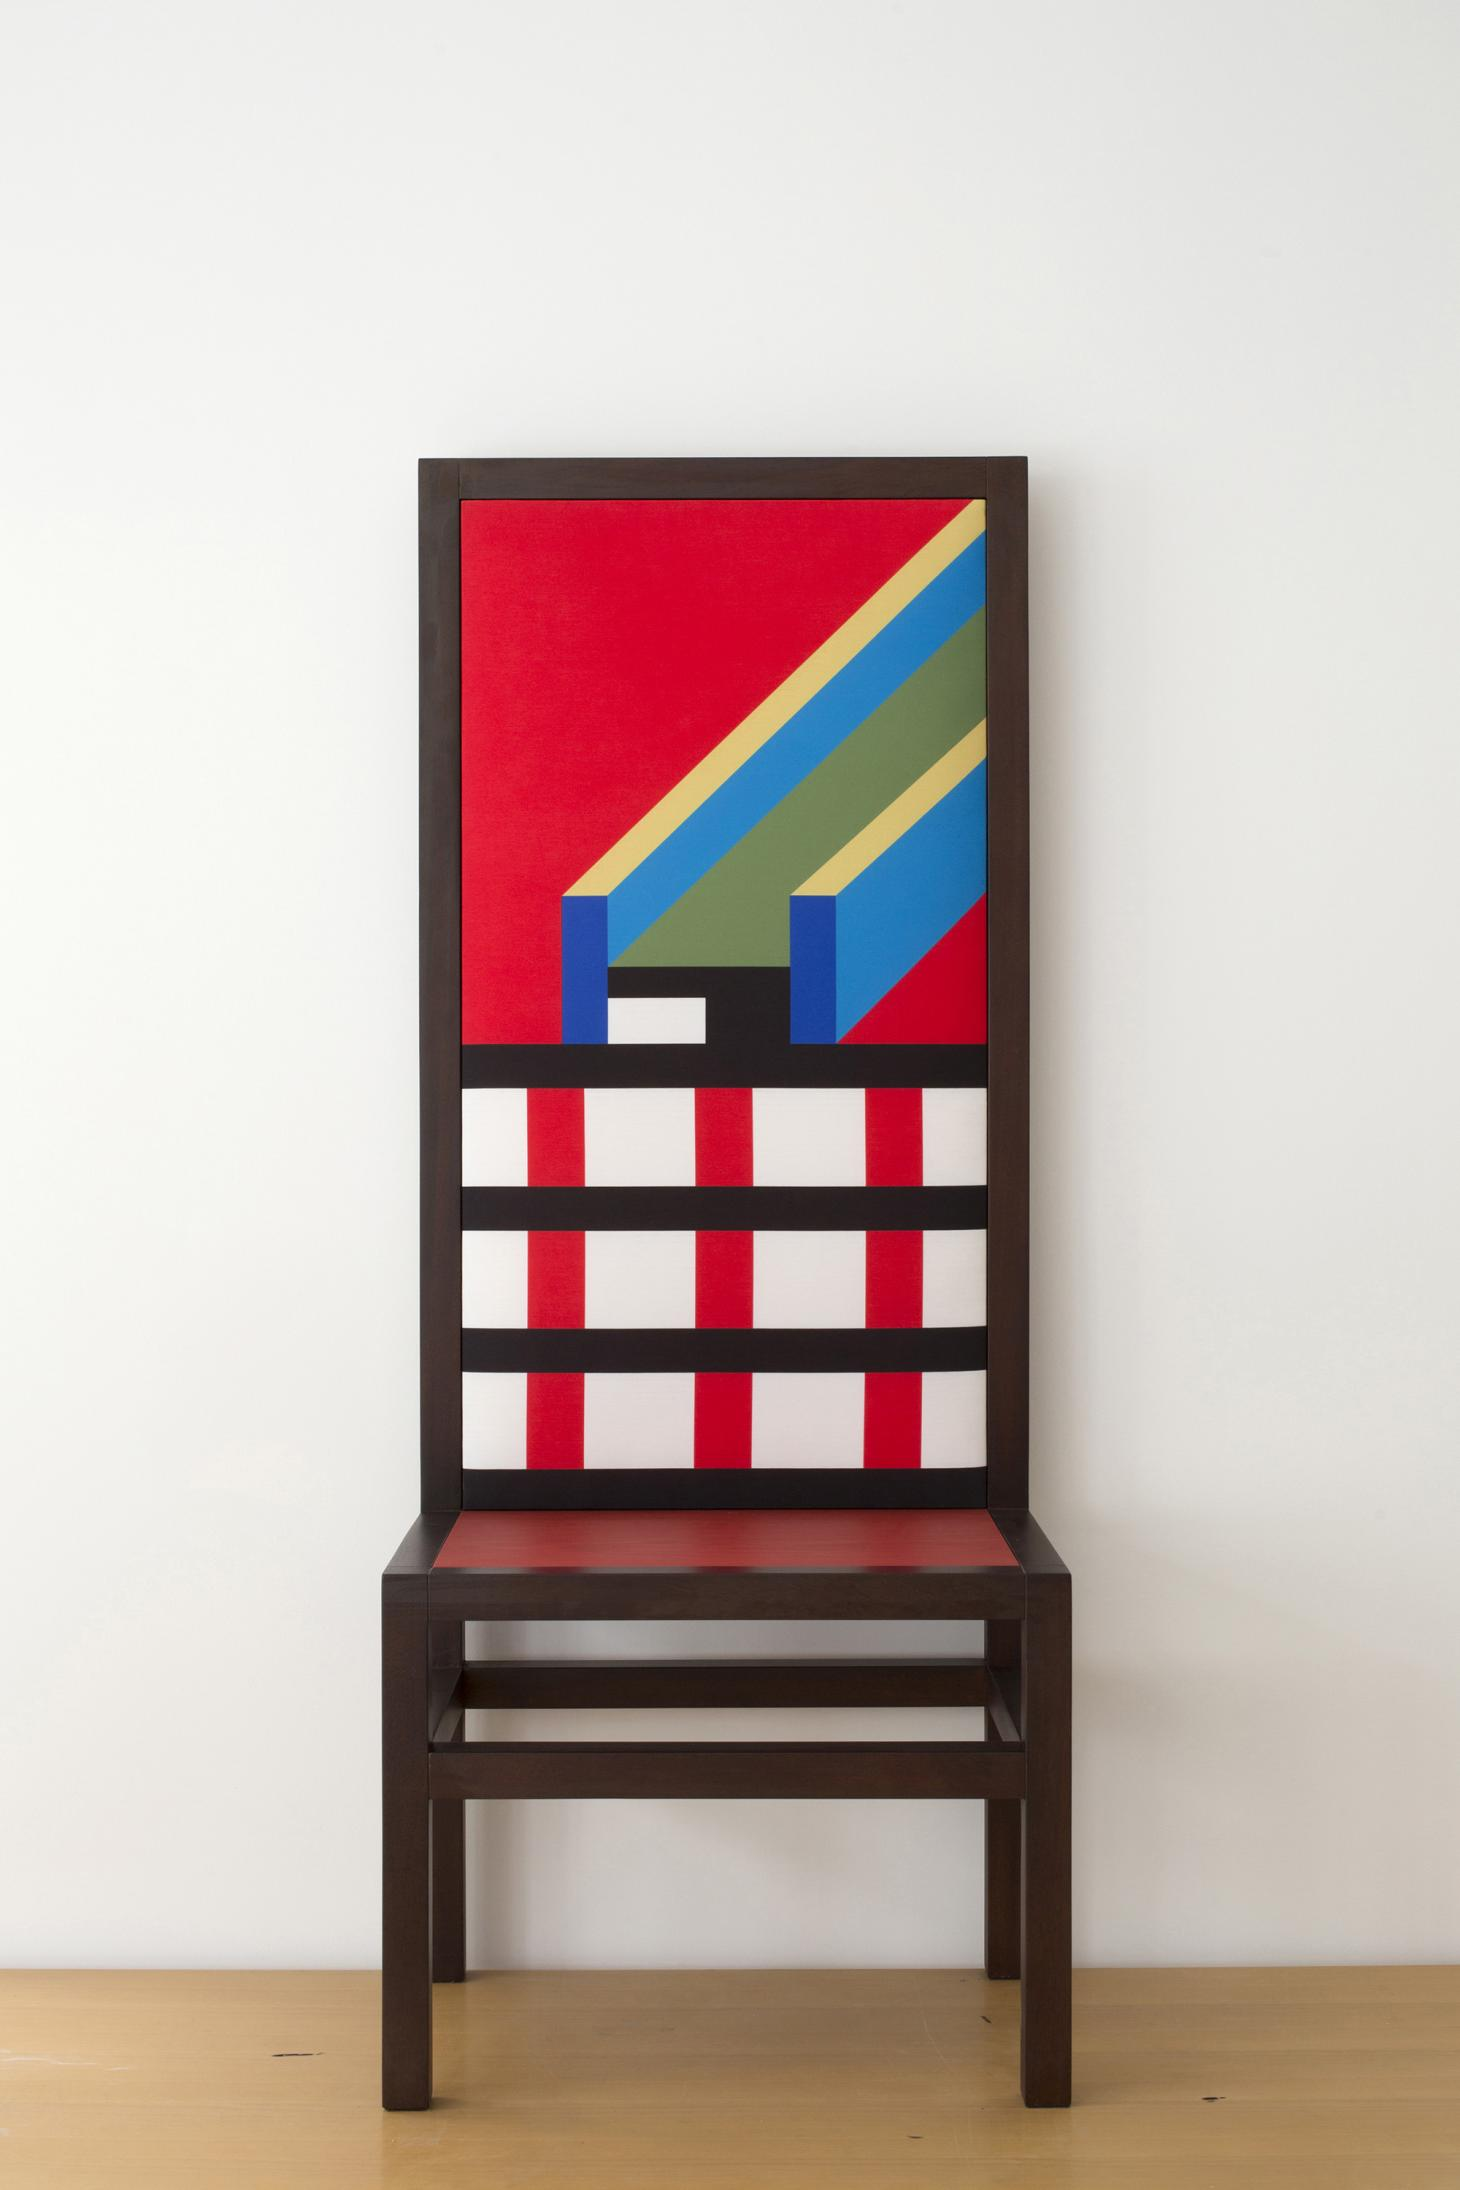 Work by Nathalie Du Pasquier